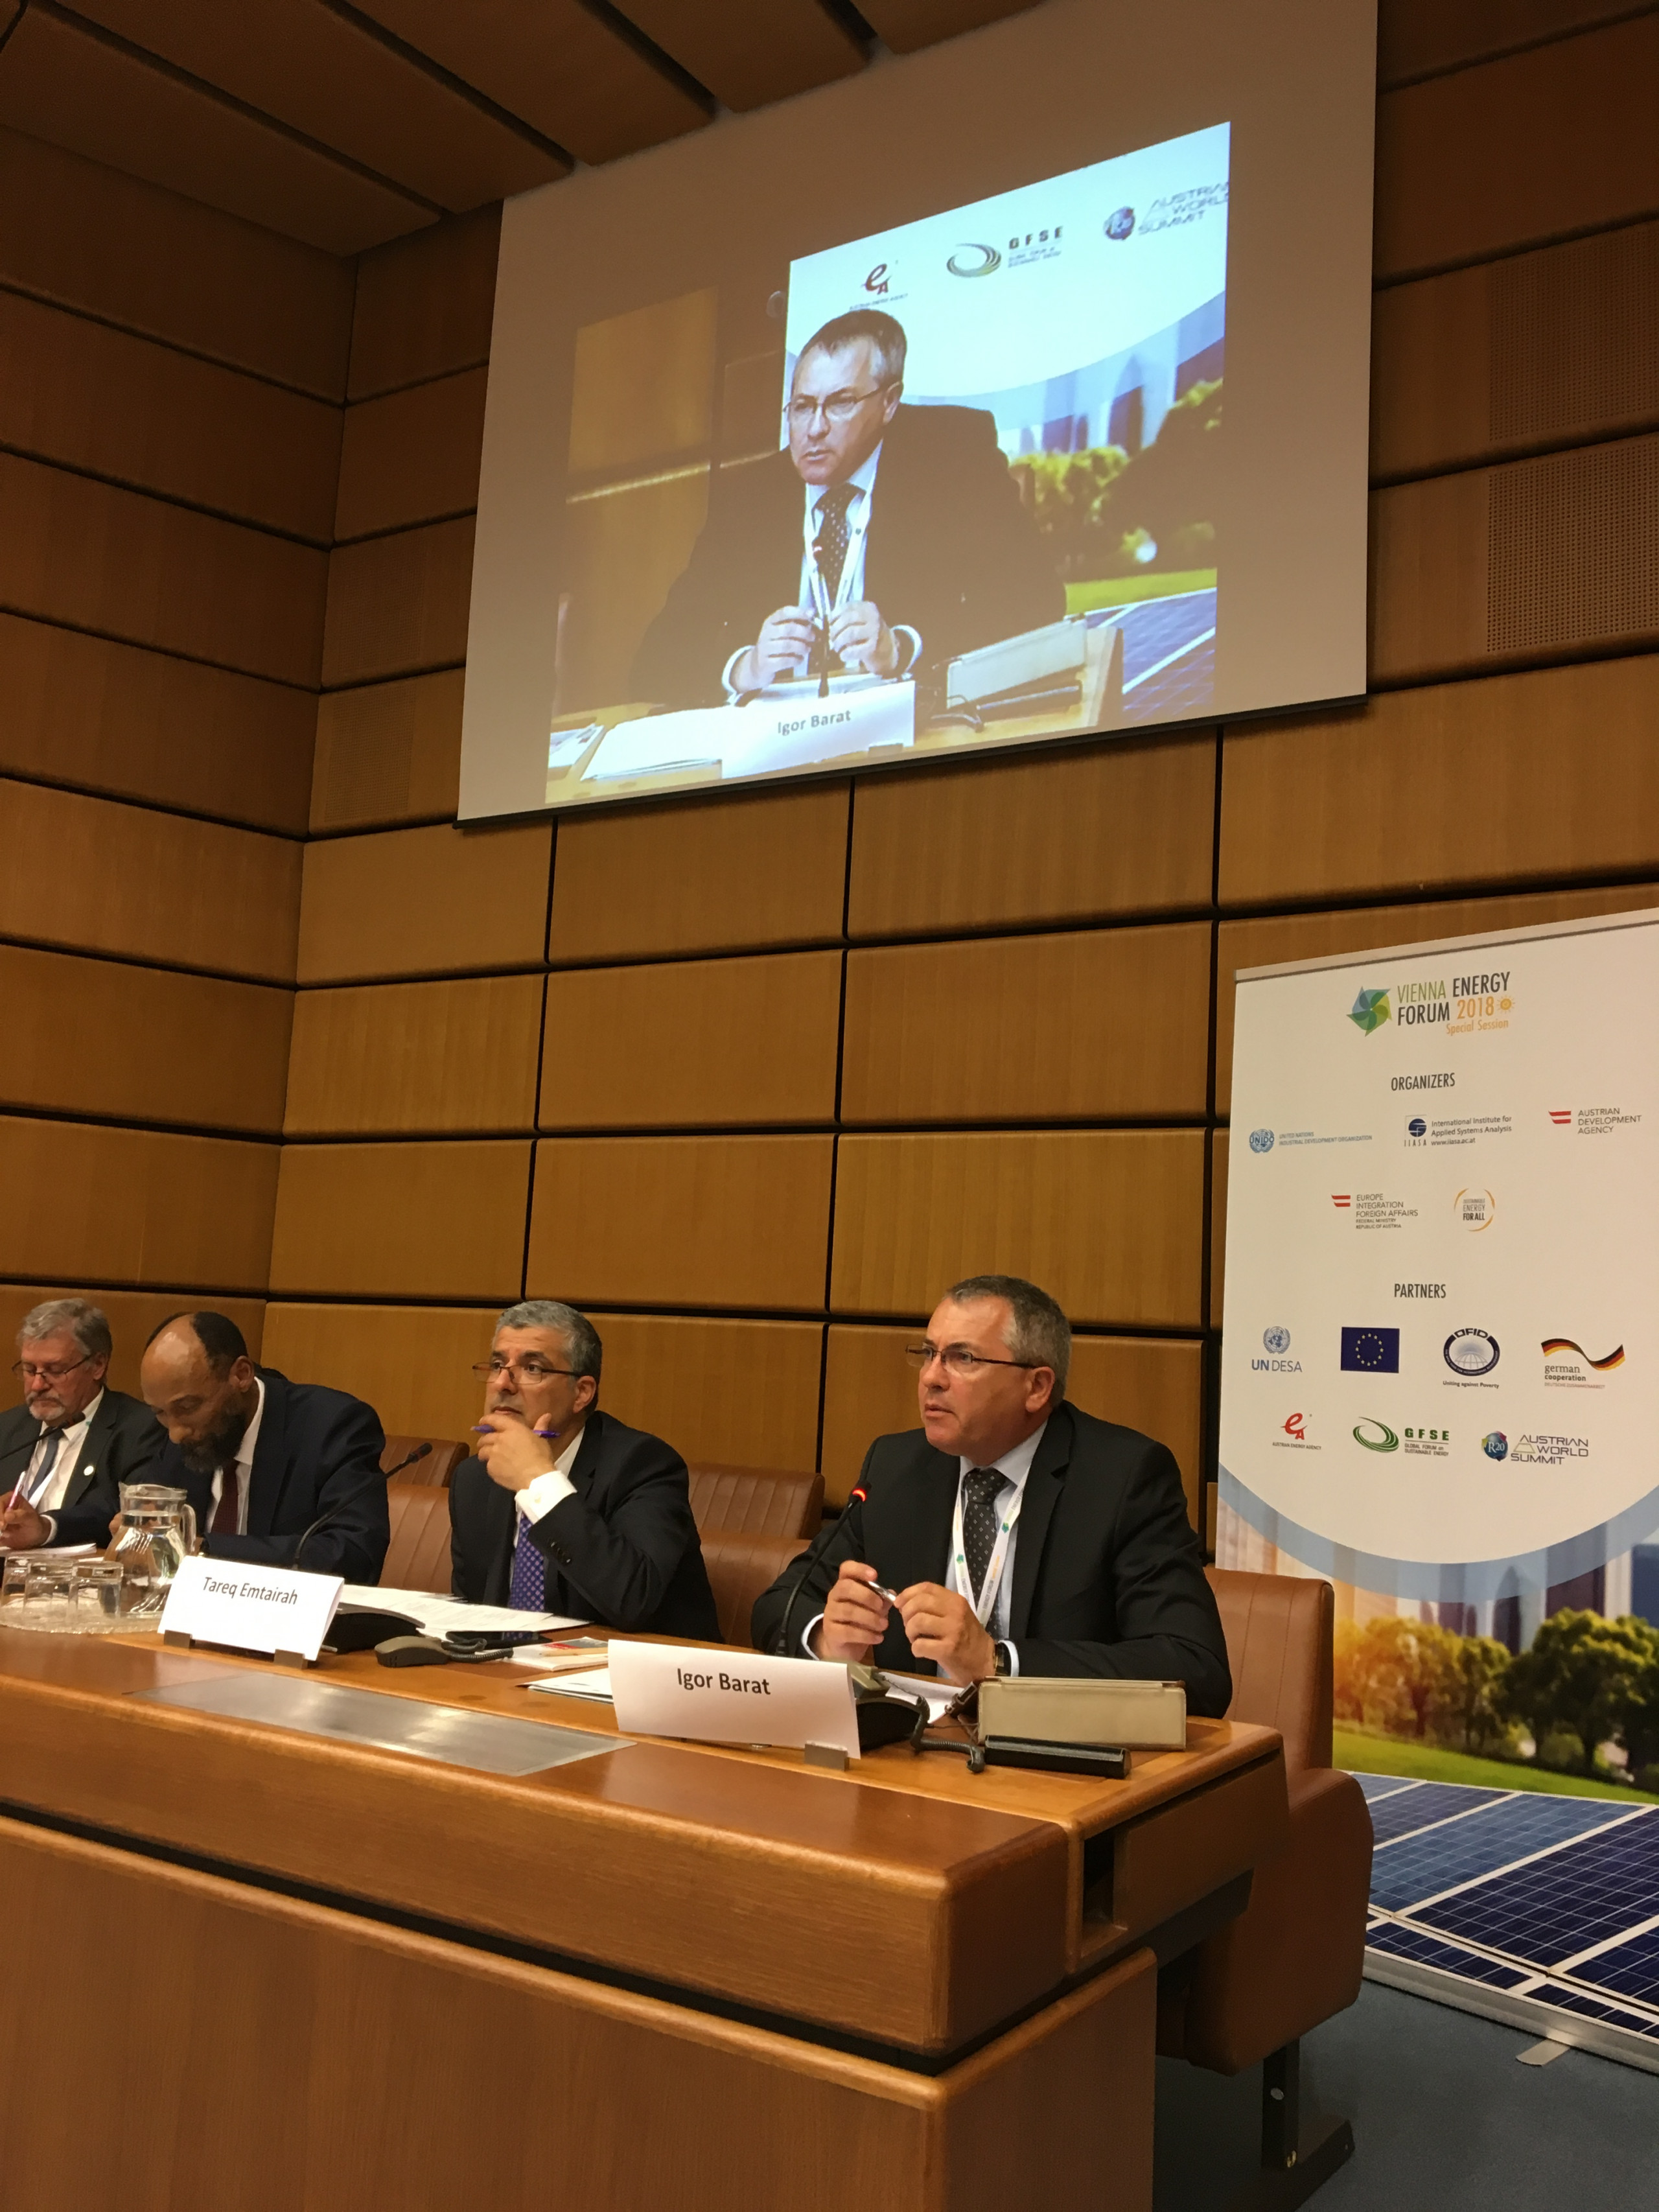 IIB reconfirms its green focus at UNIDO Vienna Energy Forum